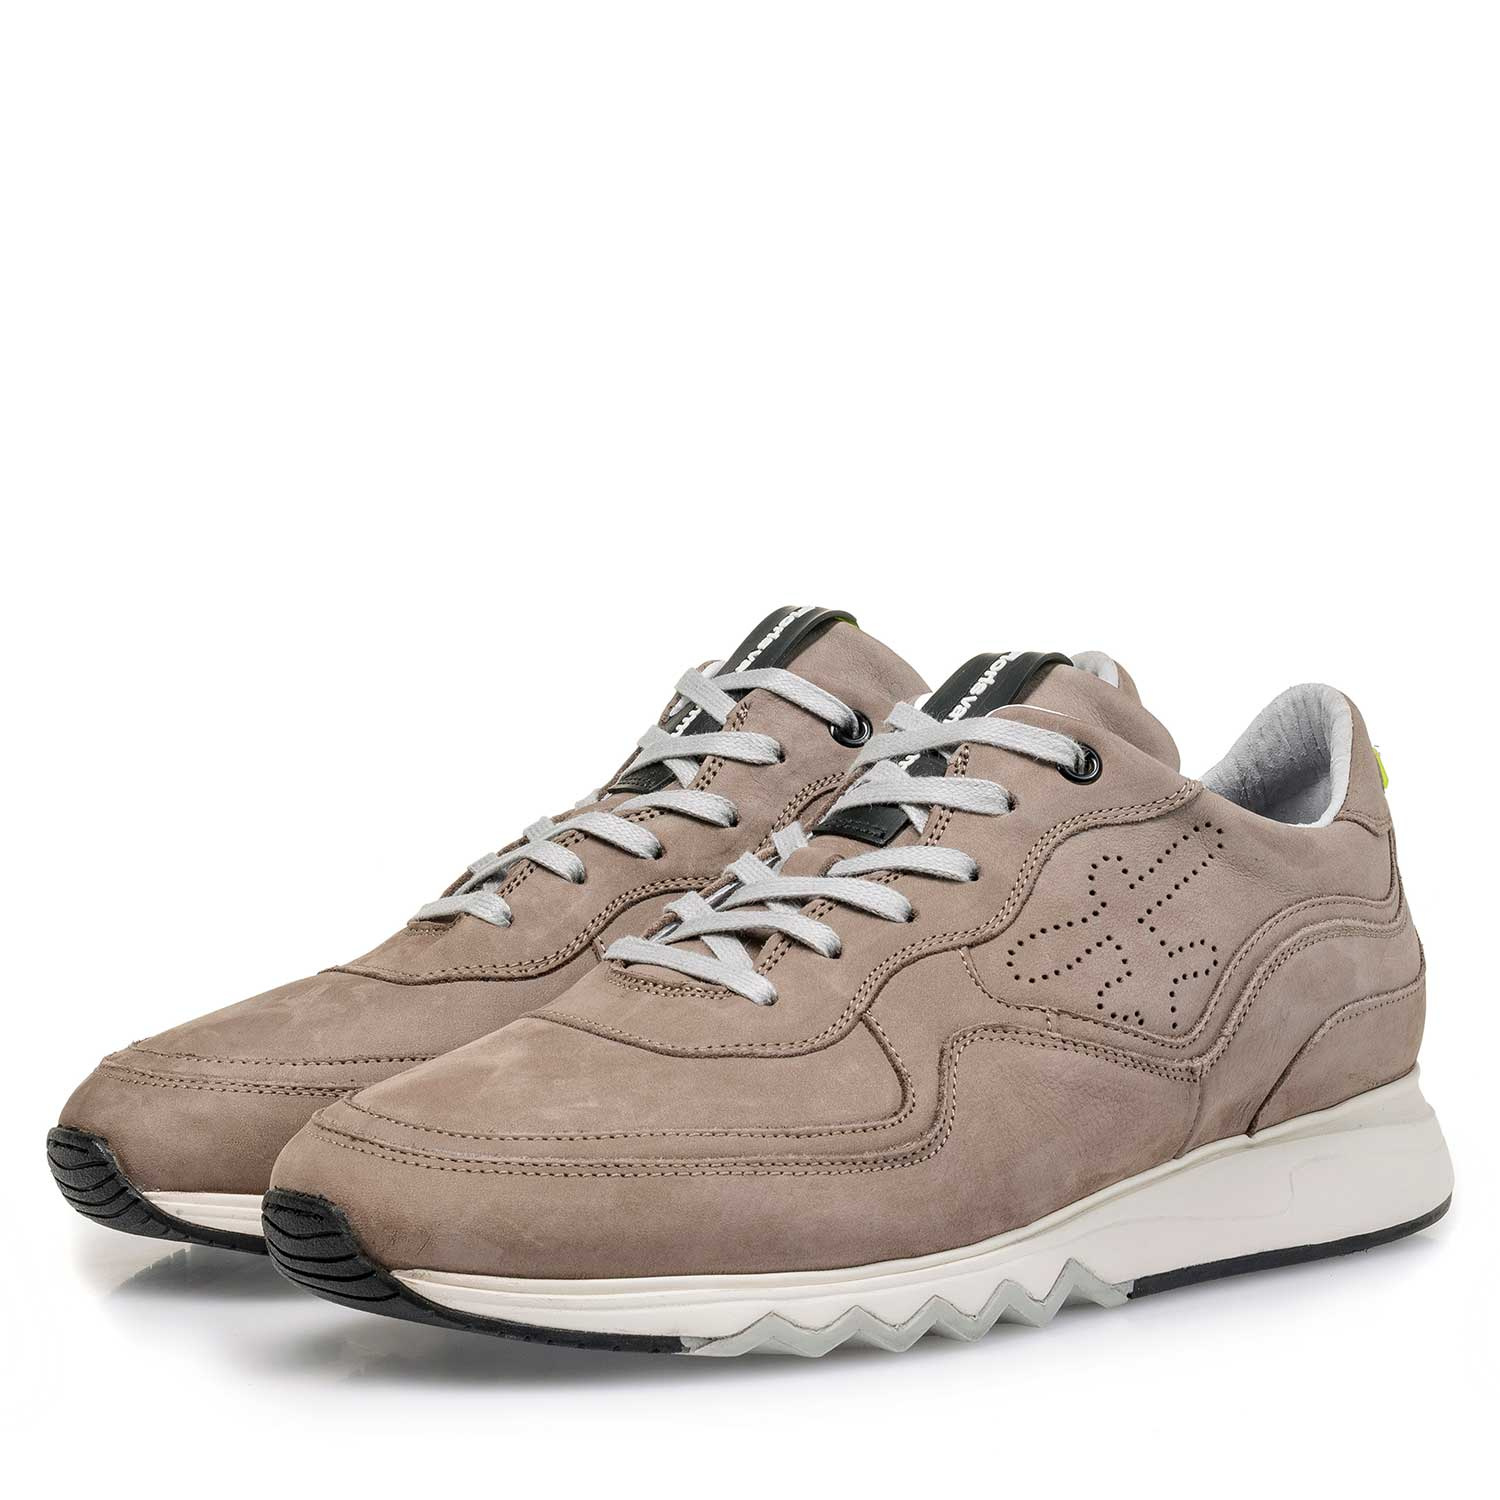 16093/06 - Taupe-coloured nubuck leather sneaker